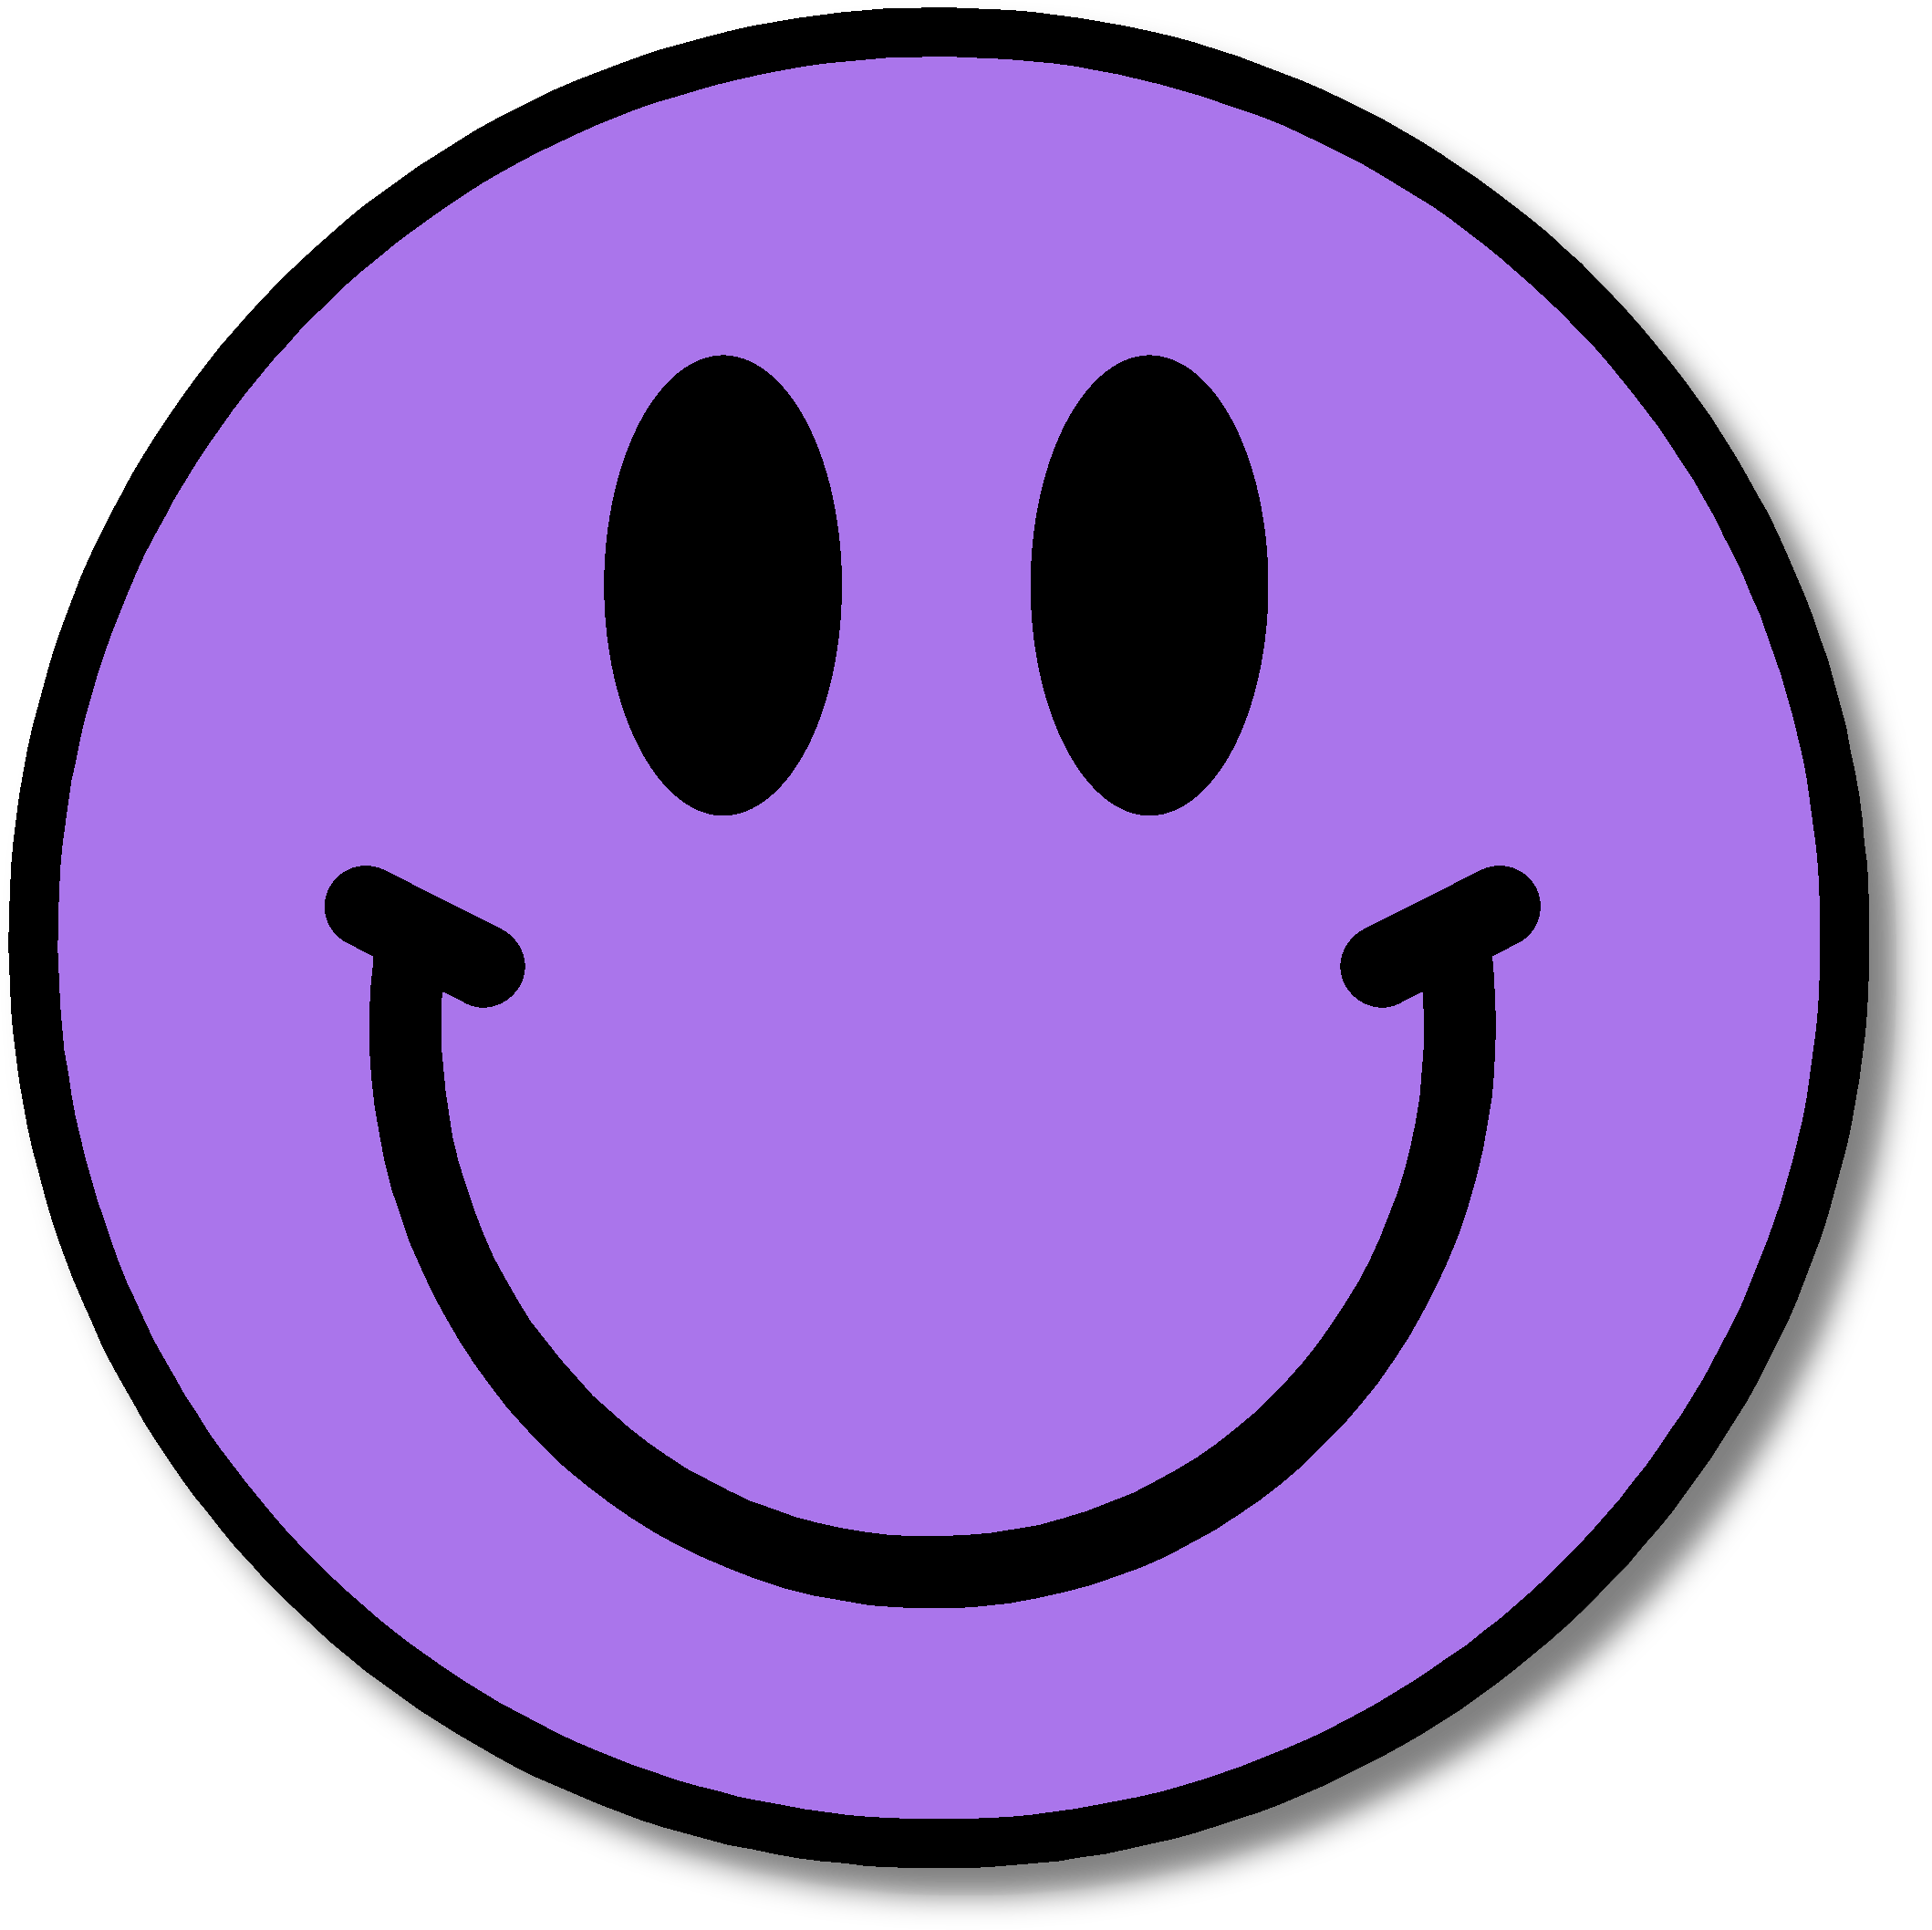 Purple Happy Face Free Cliparts That You-Purple Happy Face Free Cliparts That You Can Download To You-6